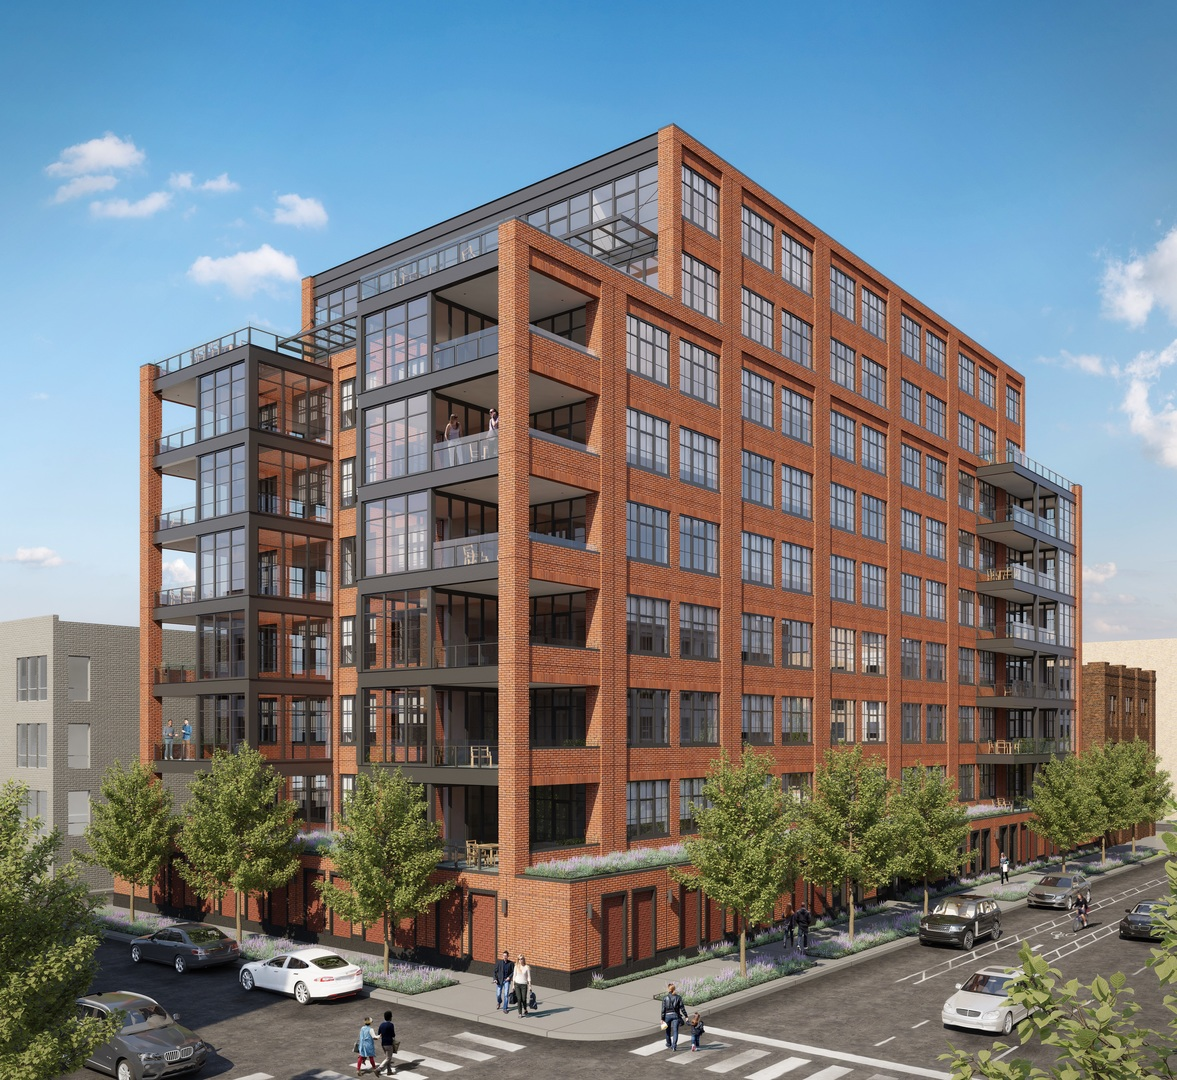 Кондоминиум для того Продажа на 1109 West Washington Boulevard #5B 1109 West Washington Boulevard #5B Chicago, Иллинойс,60607 Соединенные Штаты